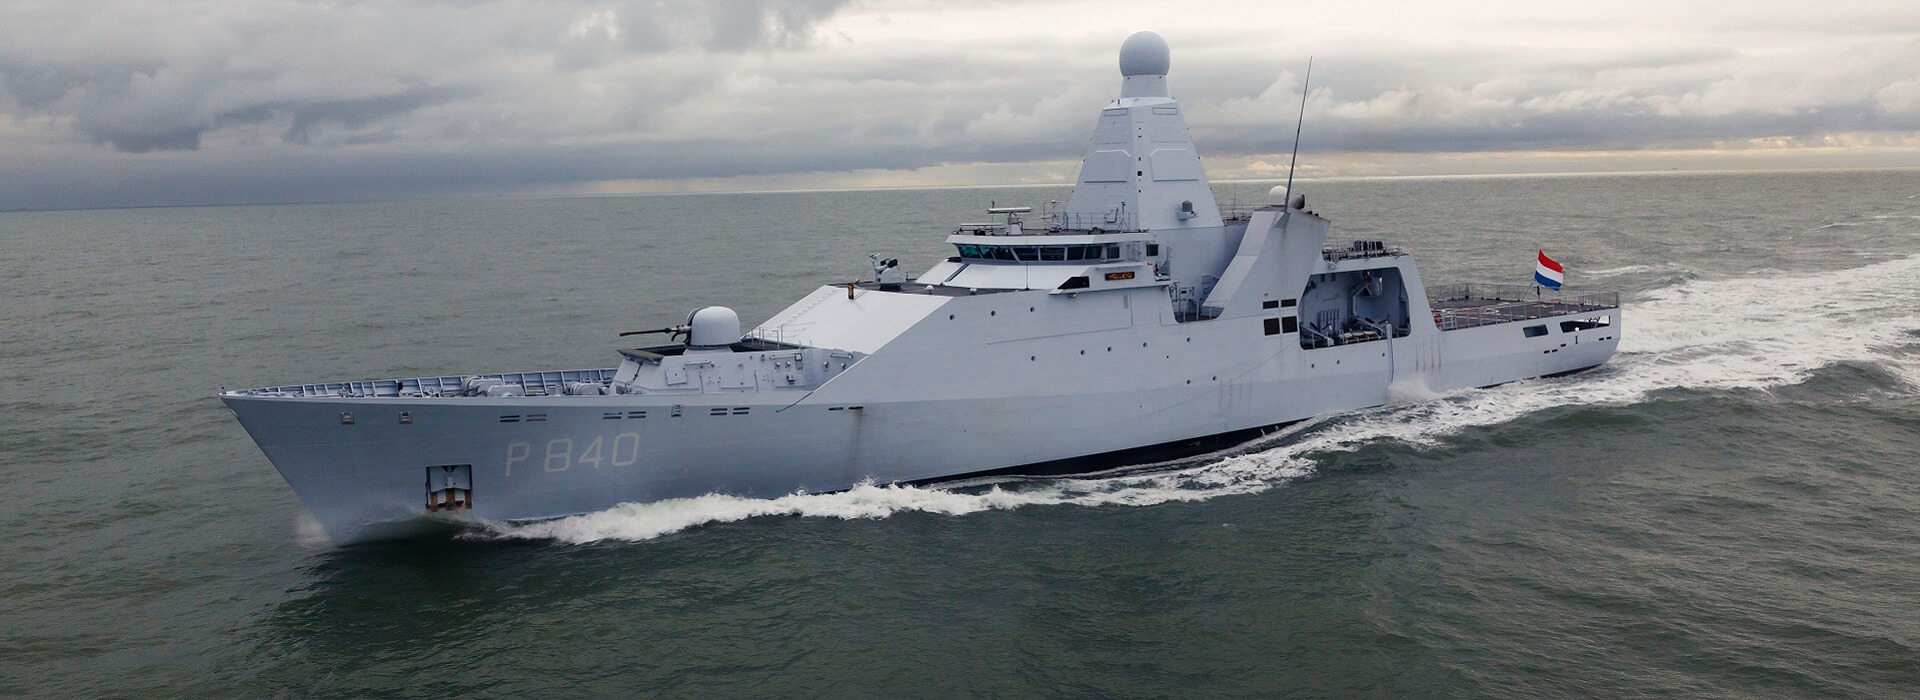 Zr. Ms. Friesland